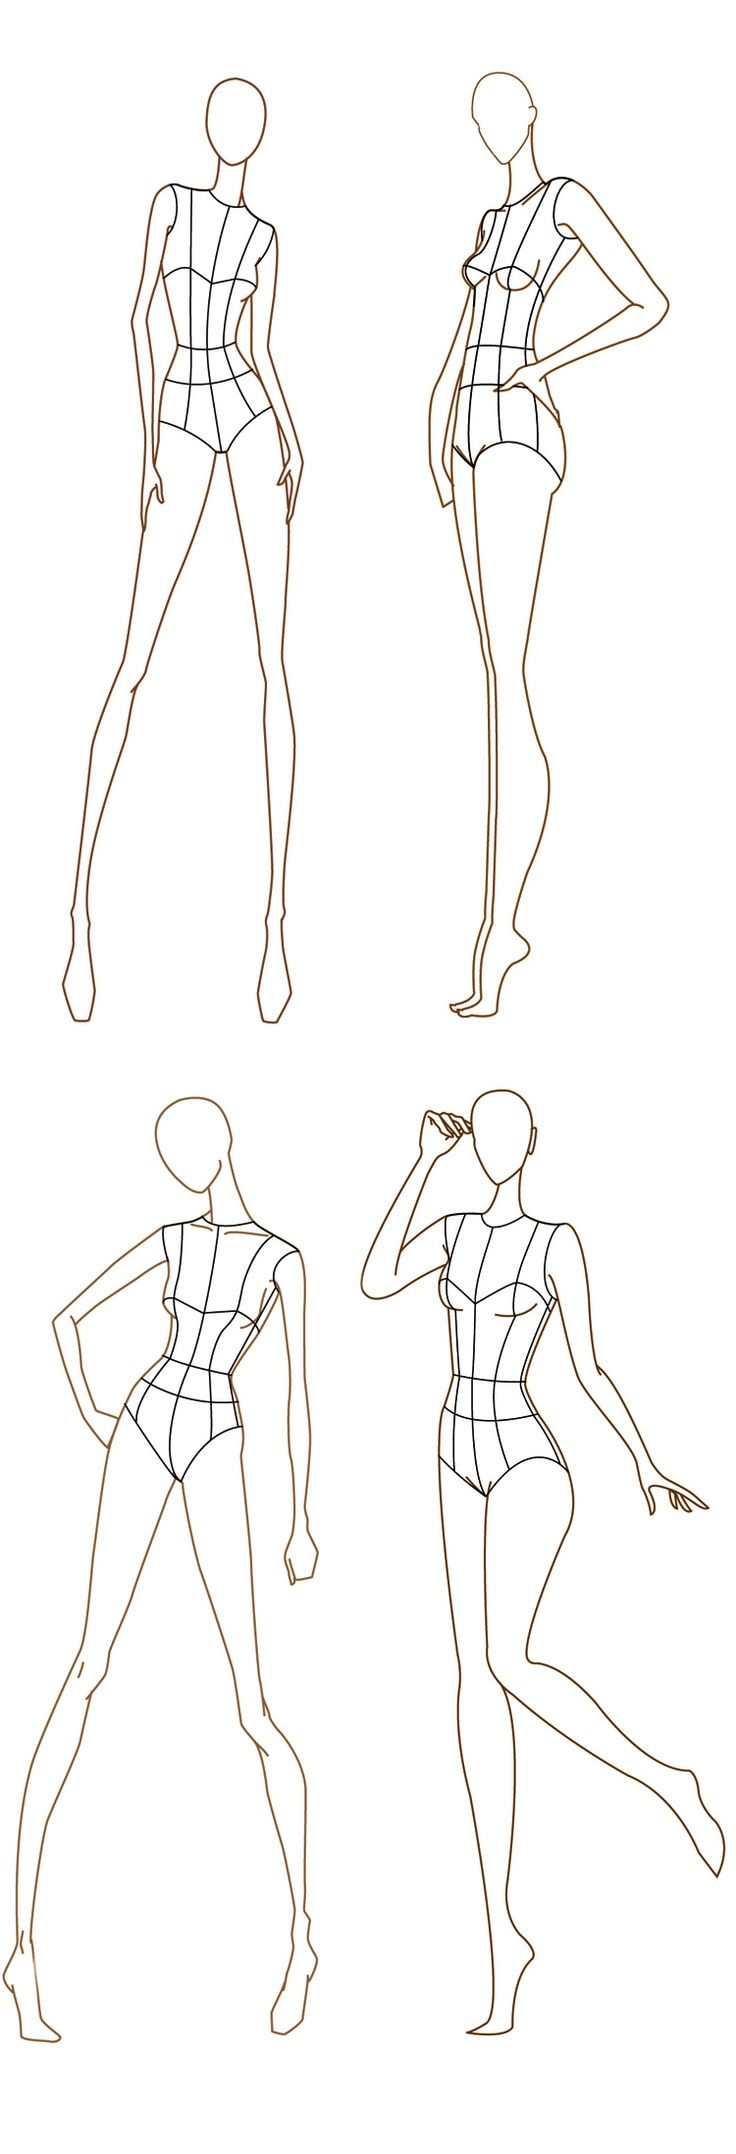 17 Best images about Fashion Illustration Templates on Pinterest ...